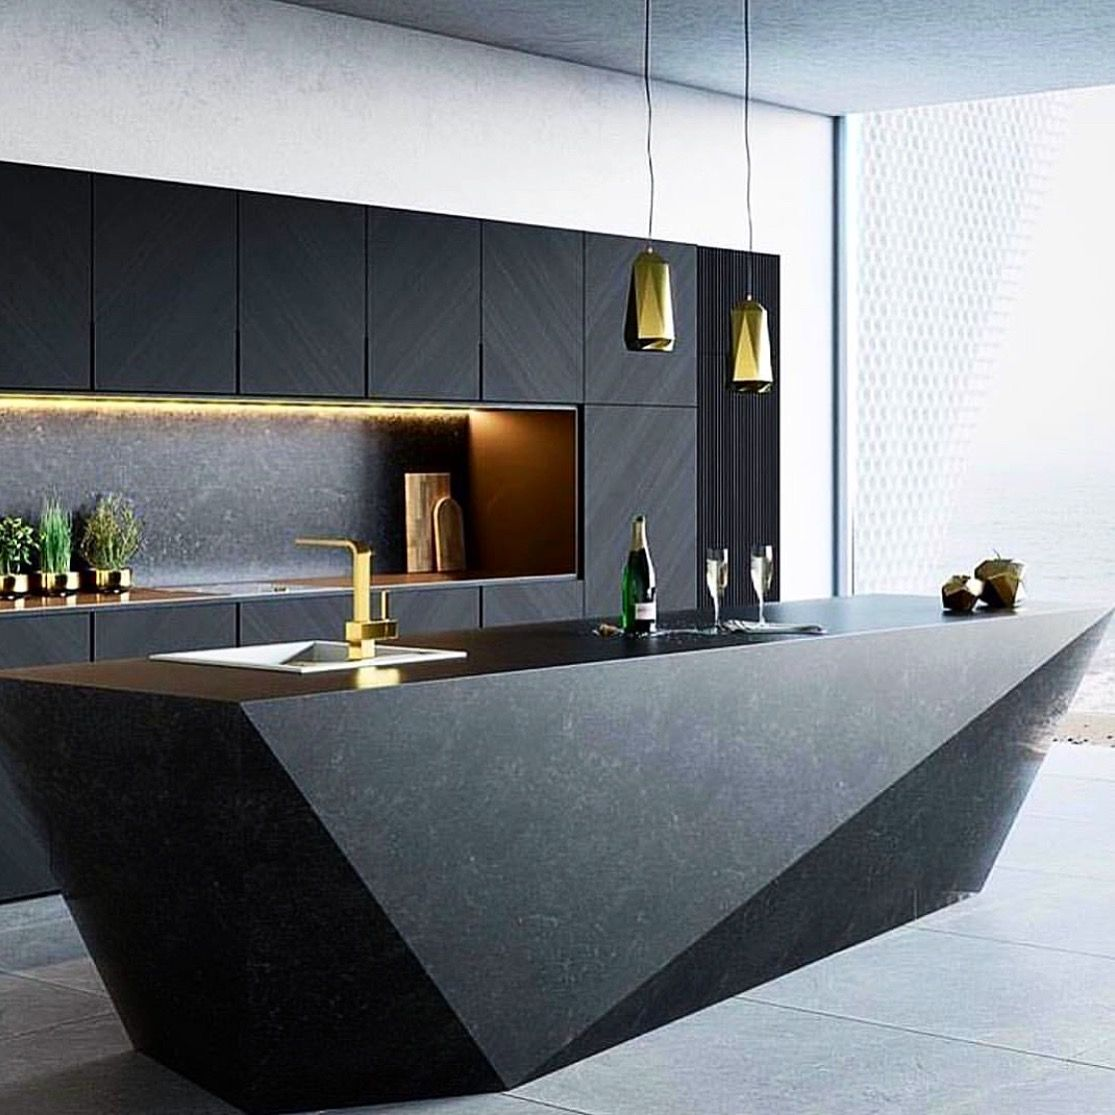 Pin by Leo Howson on Interiors  Pinterest  Interiors